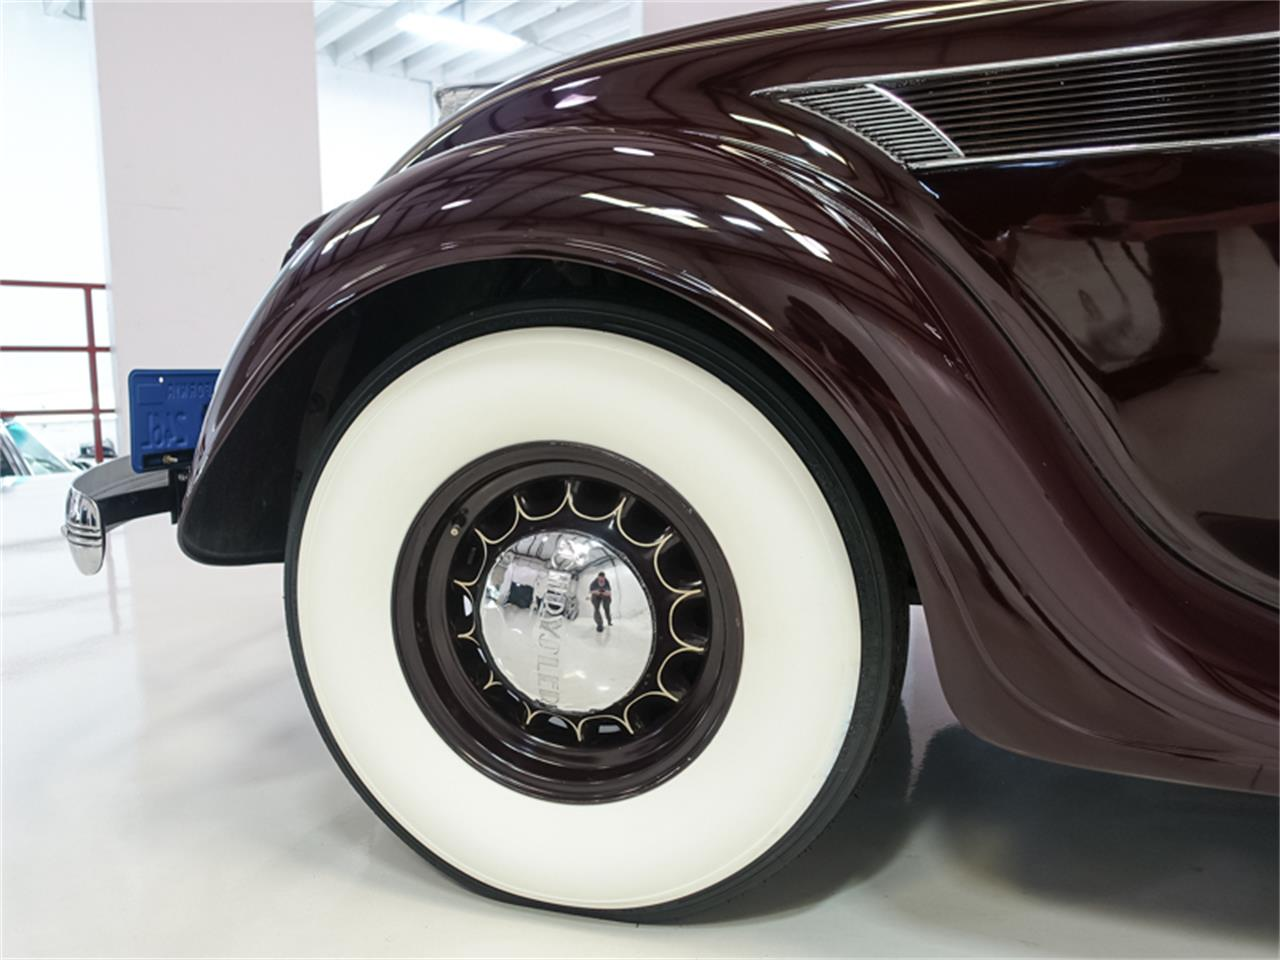 1935 Chrysler Airflow for sale in St. Louis, MO – photo 20